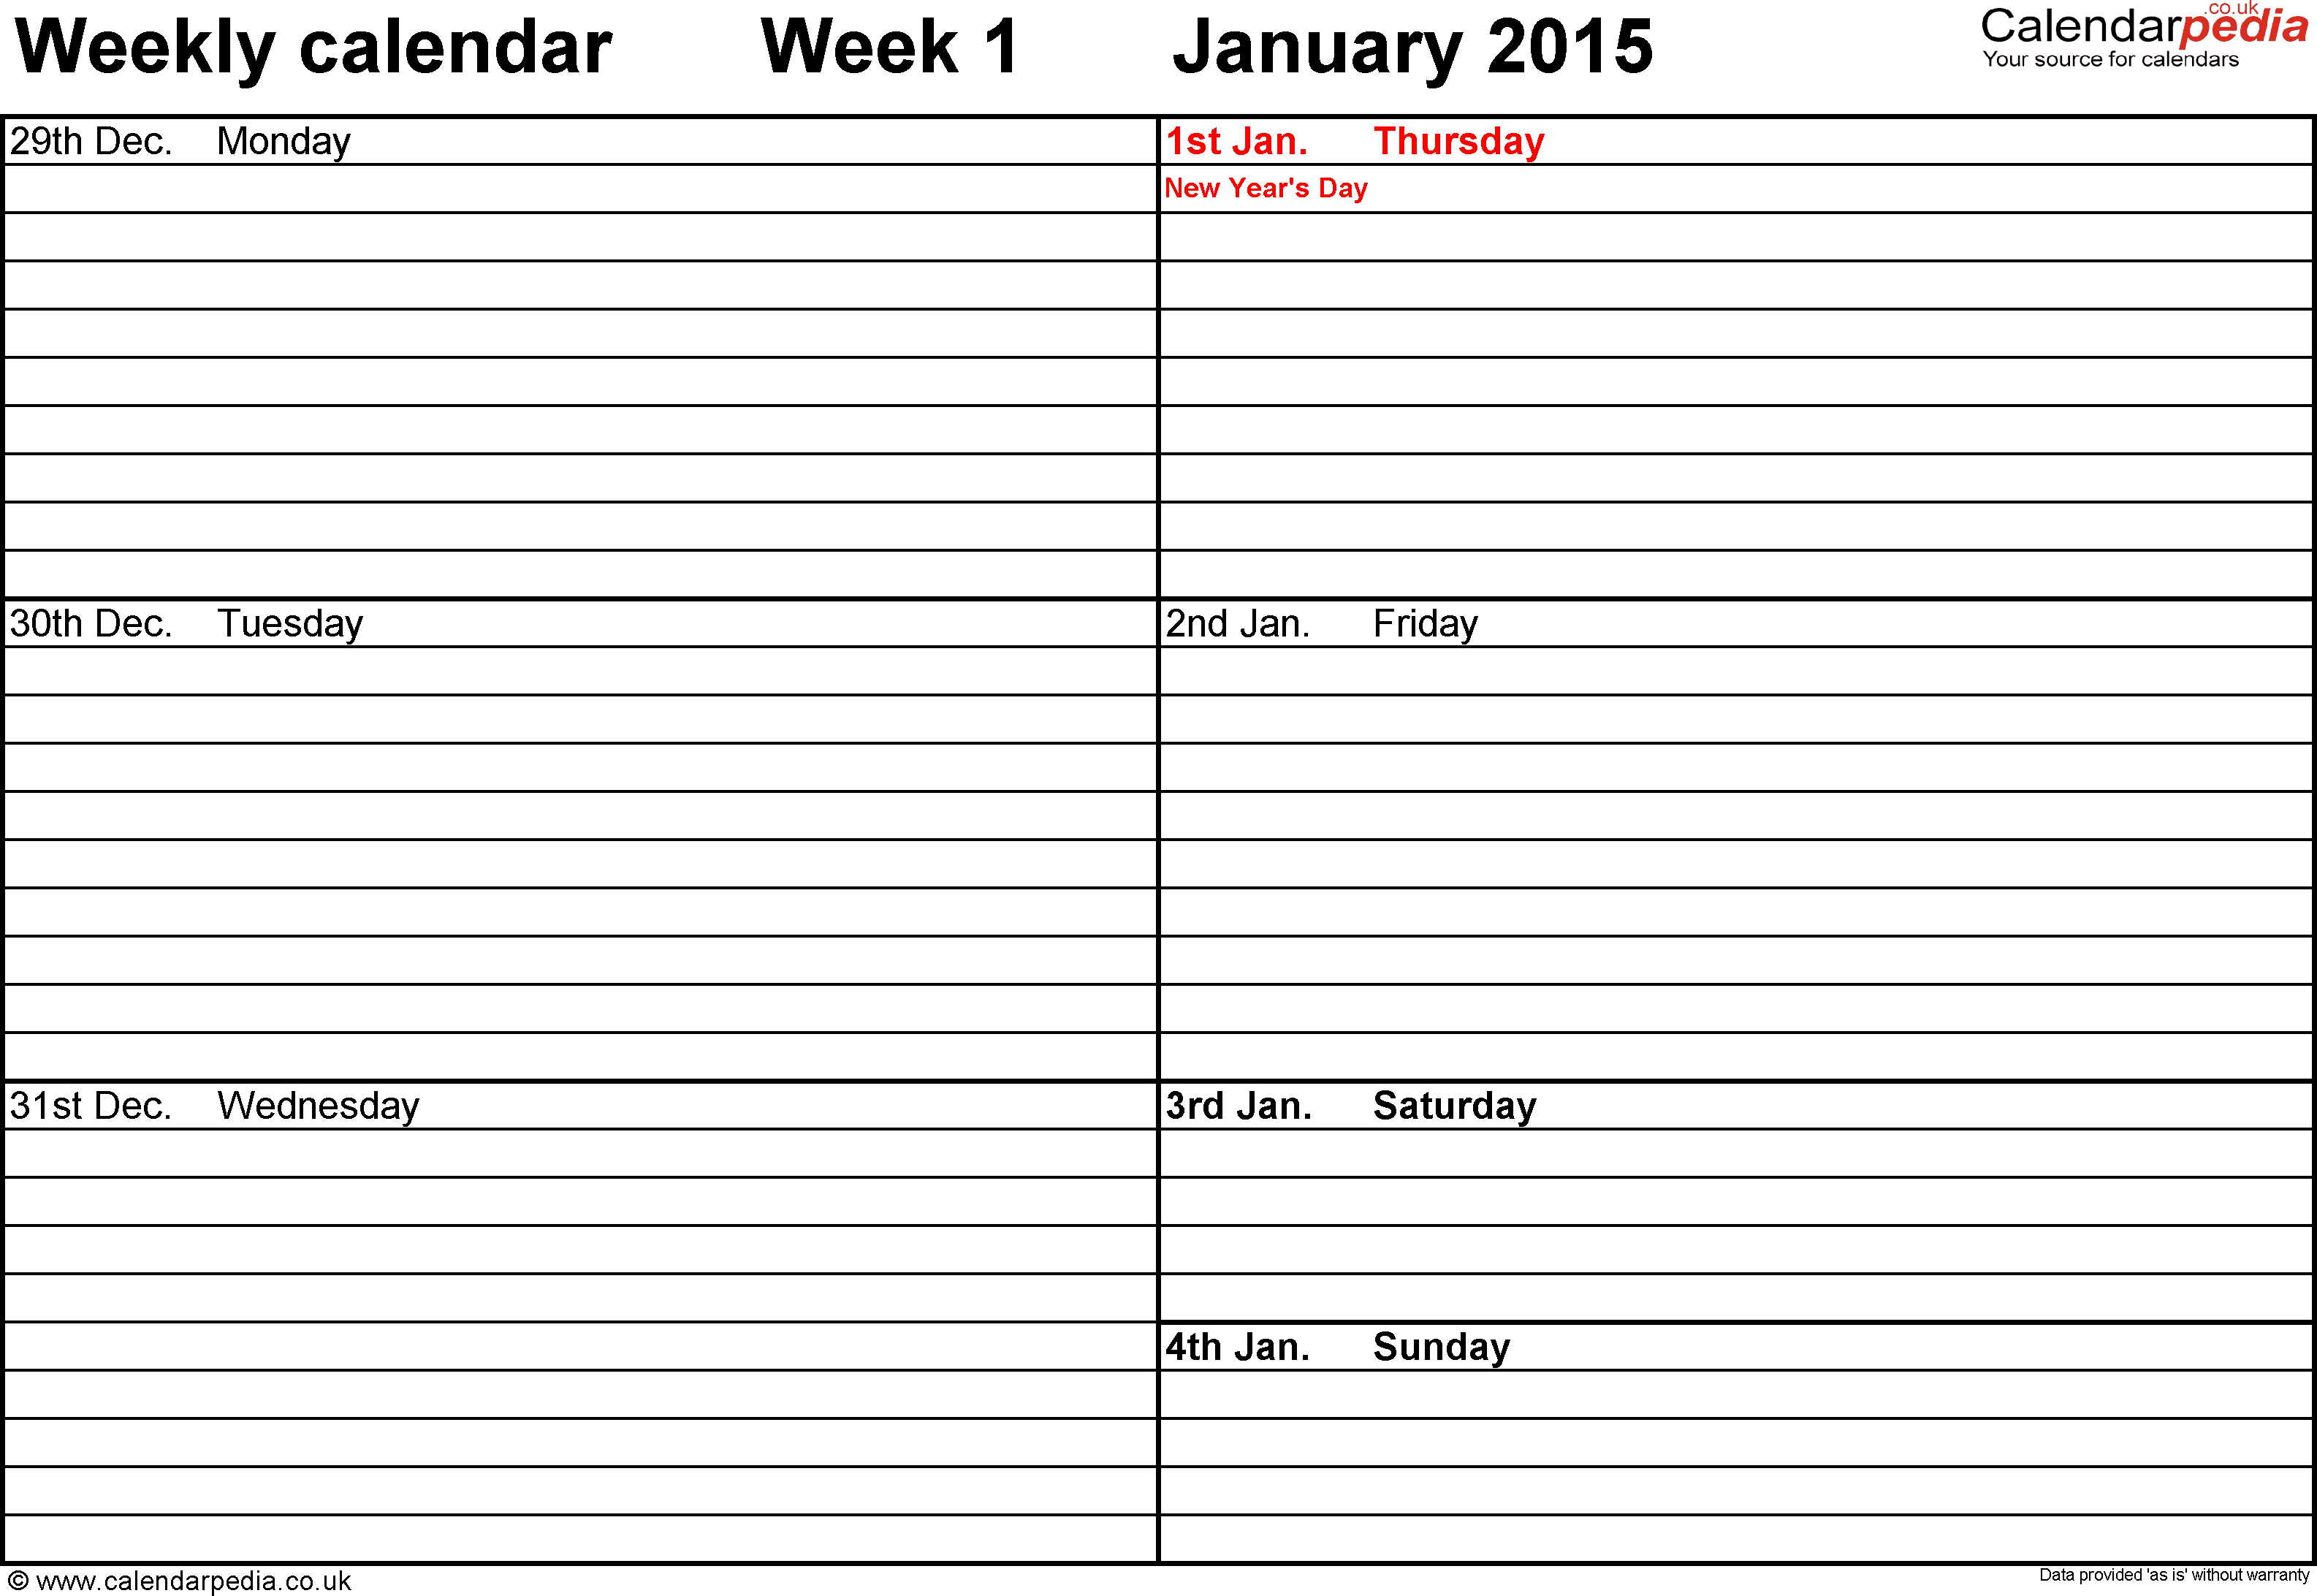 Weekly calendar 2015 UK free printable templates for Word – Day Planner Template Word